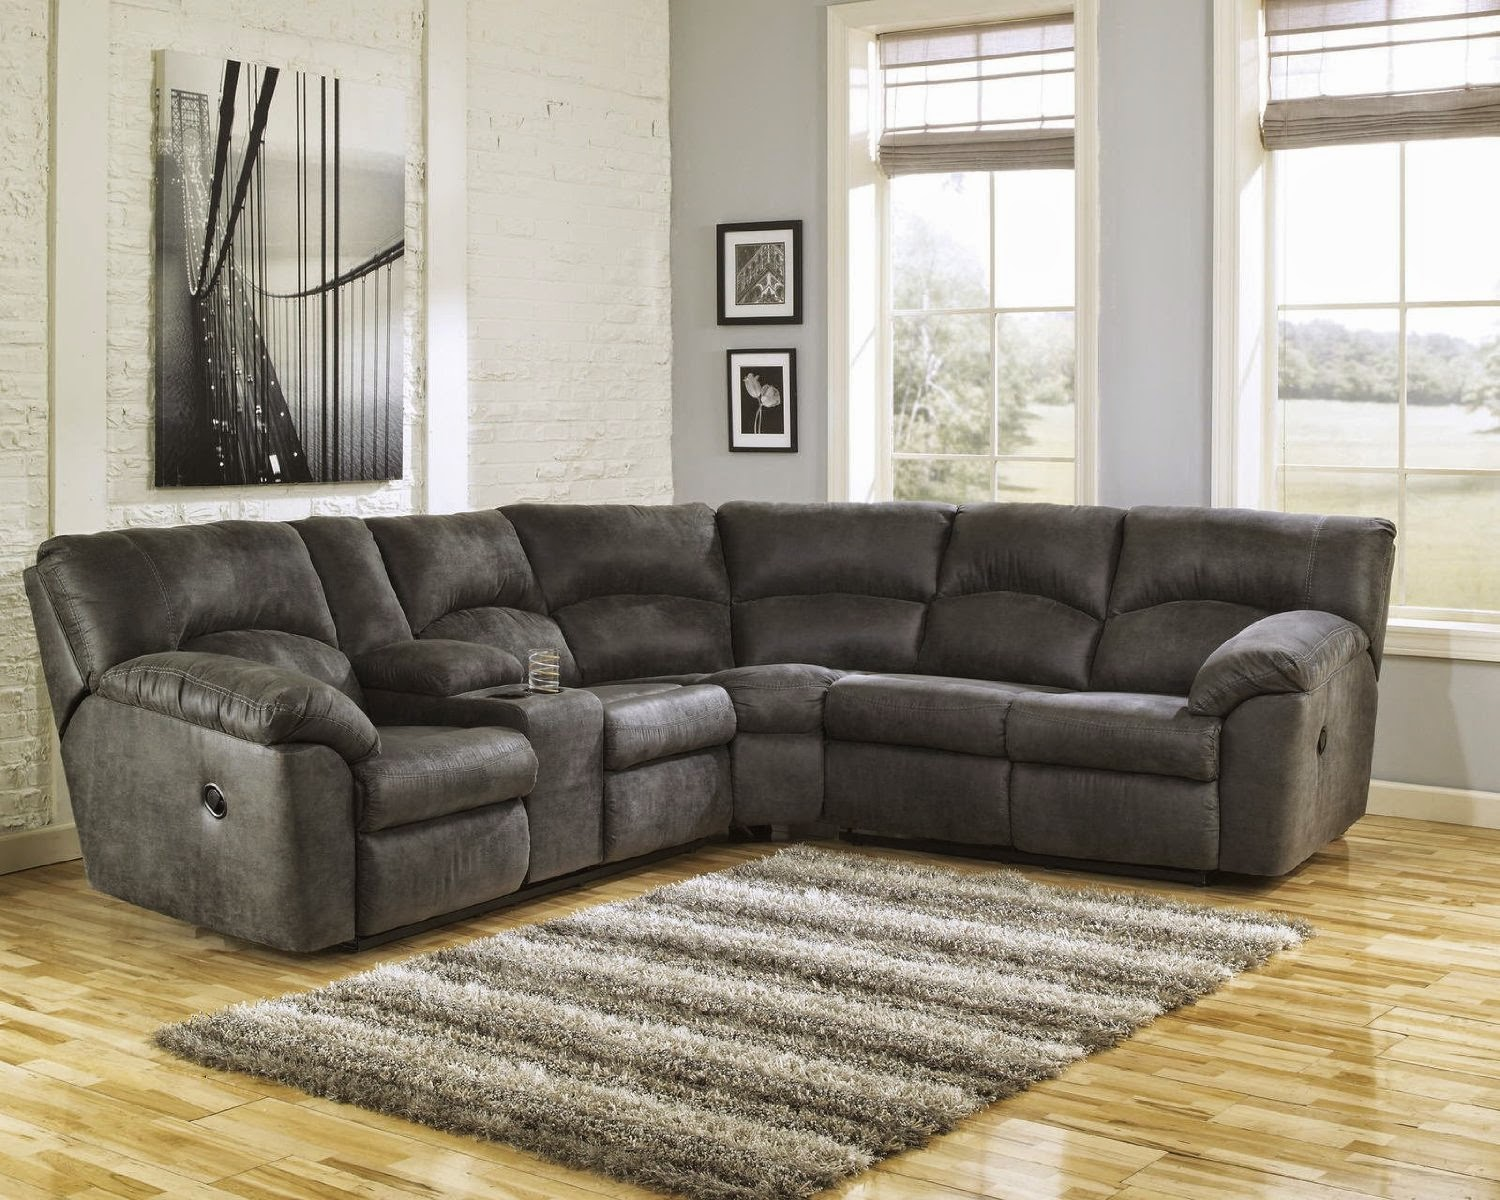 Sectional Sofa For Small Spaces The Best Reclining Sofa Reviews Sectional Reclining Sofas